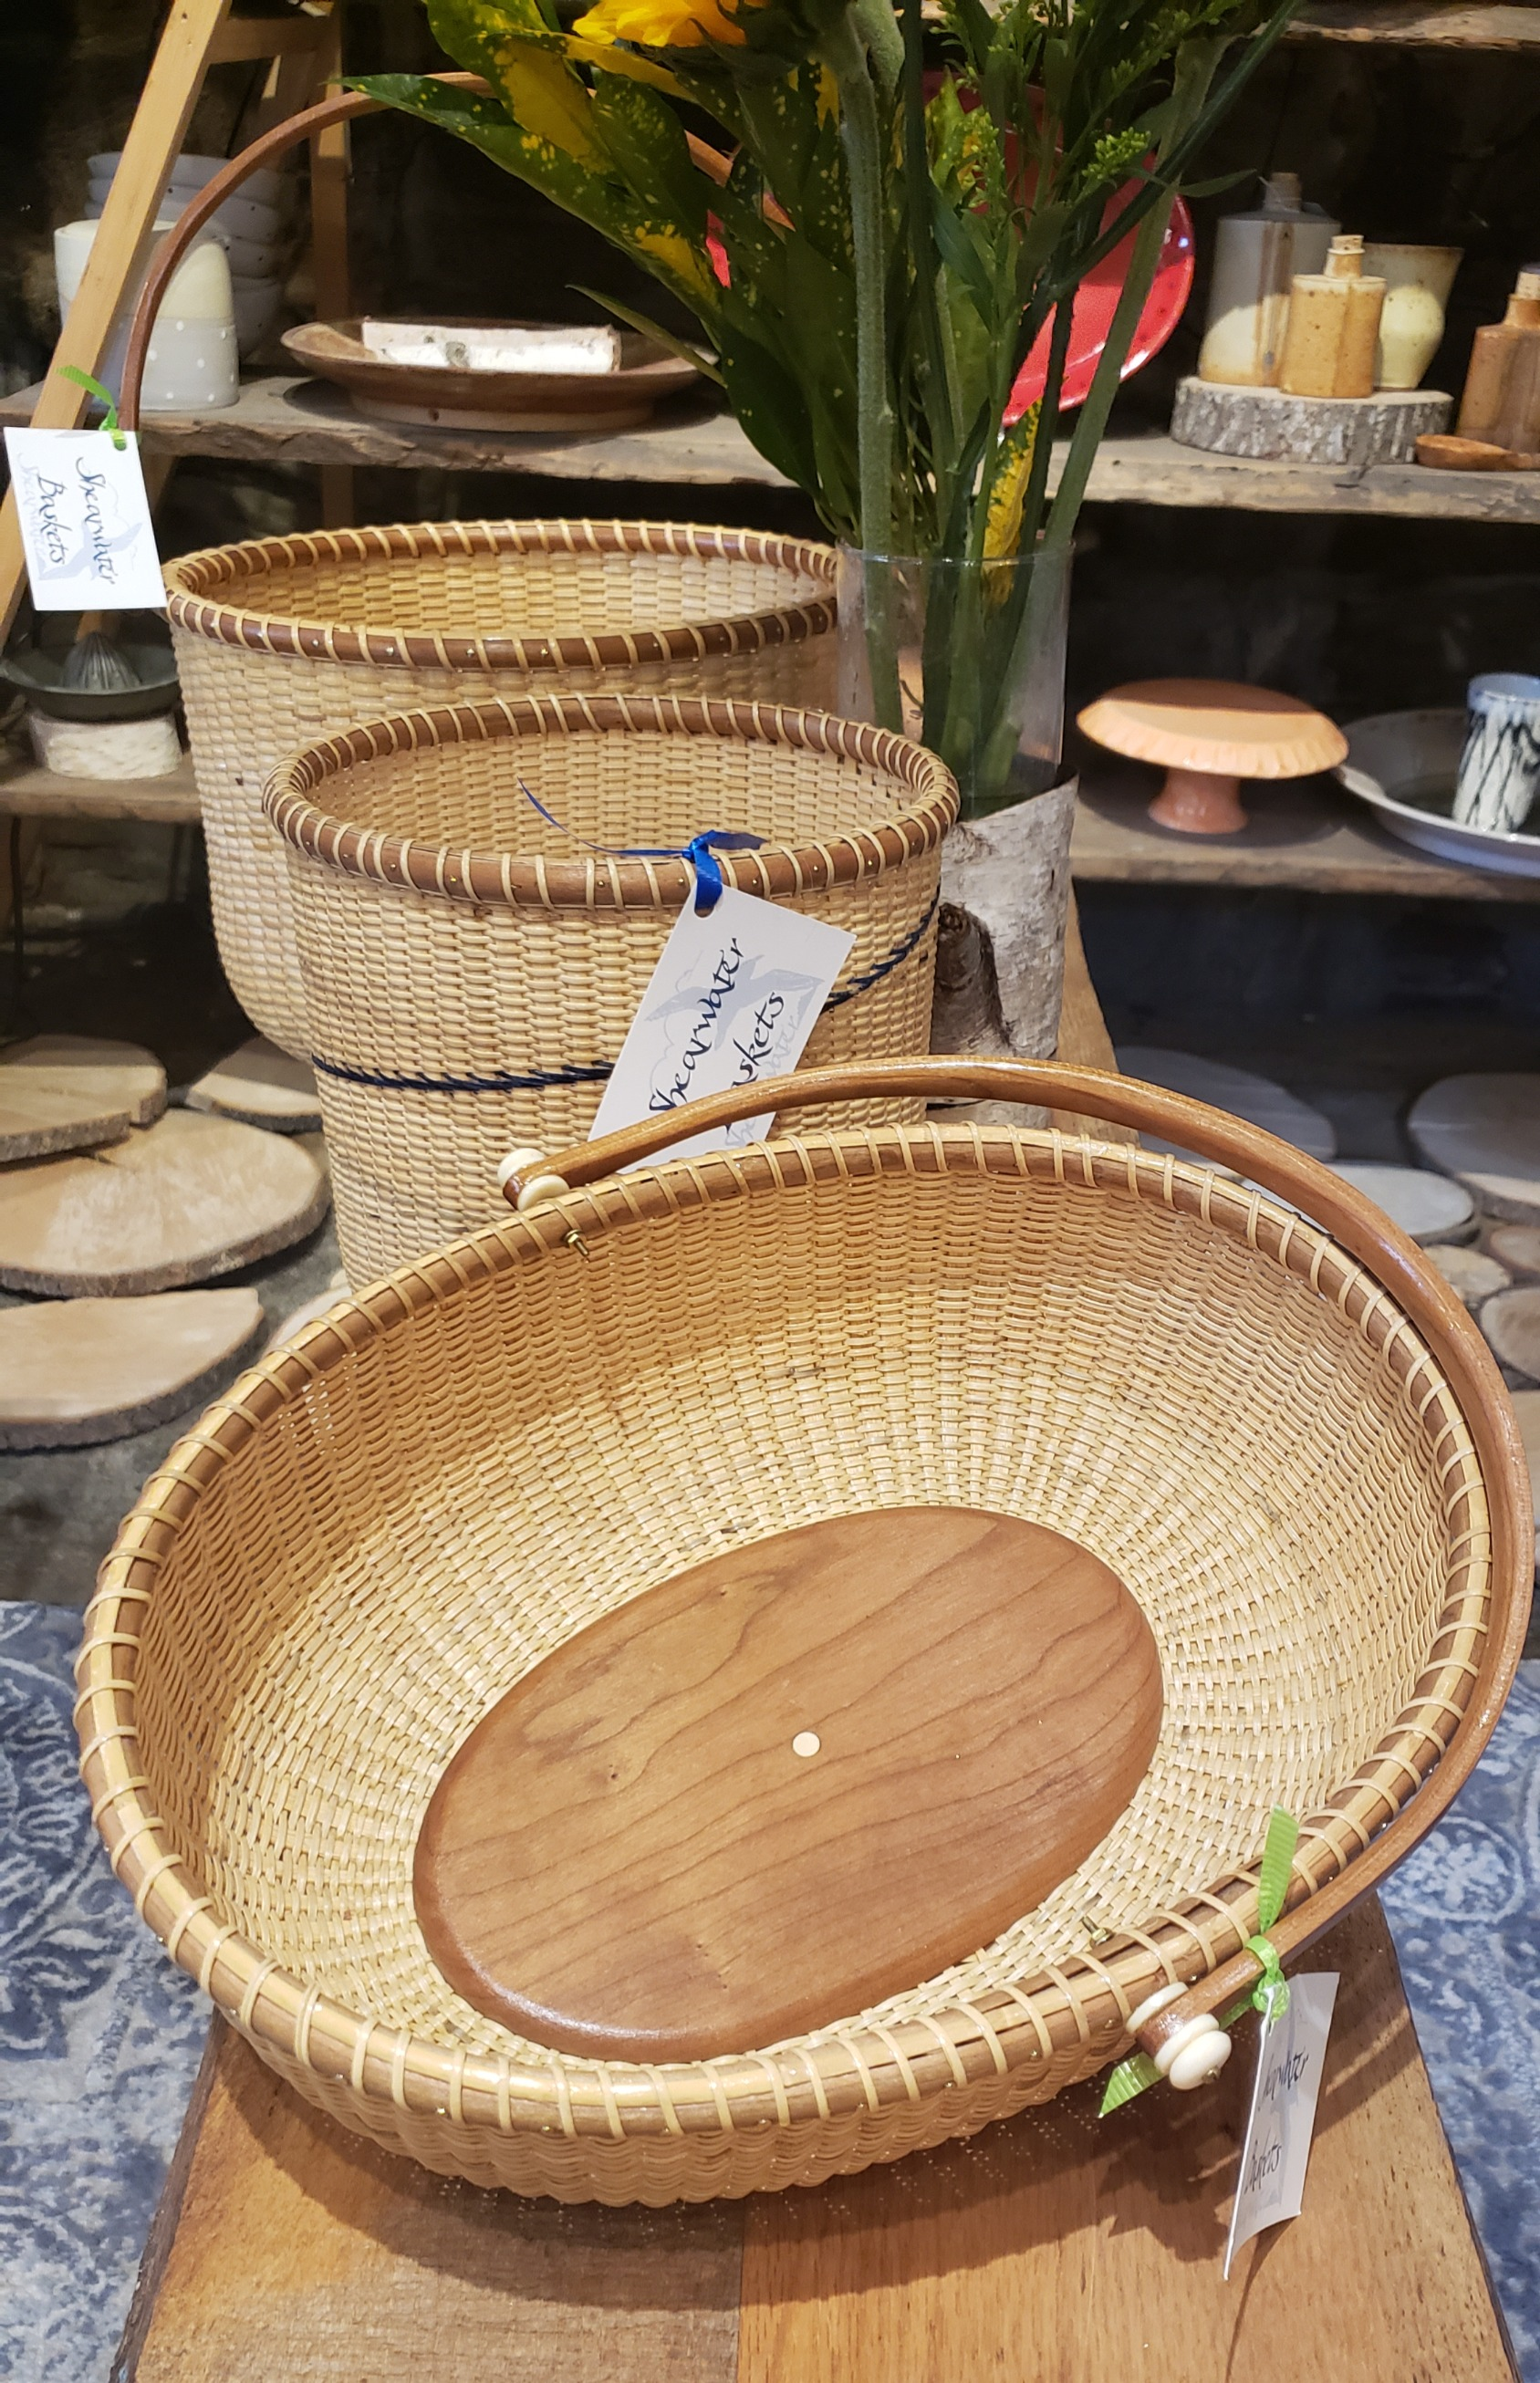 Shearwater Baskets